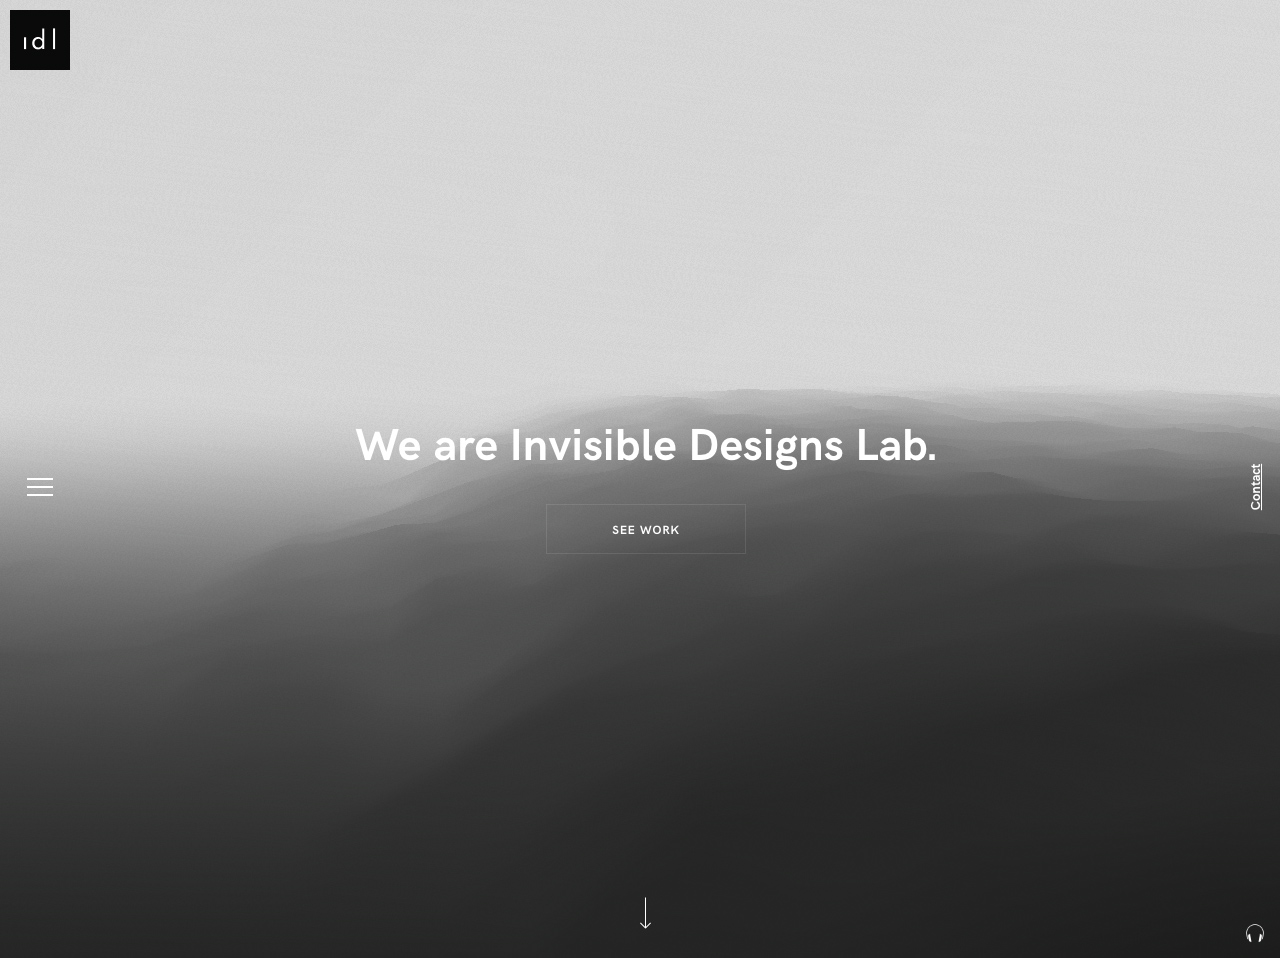 invisible designs lab